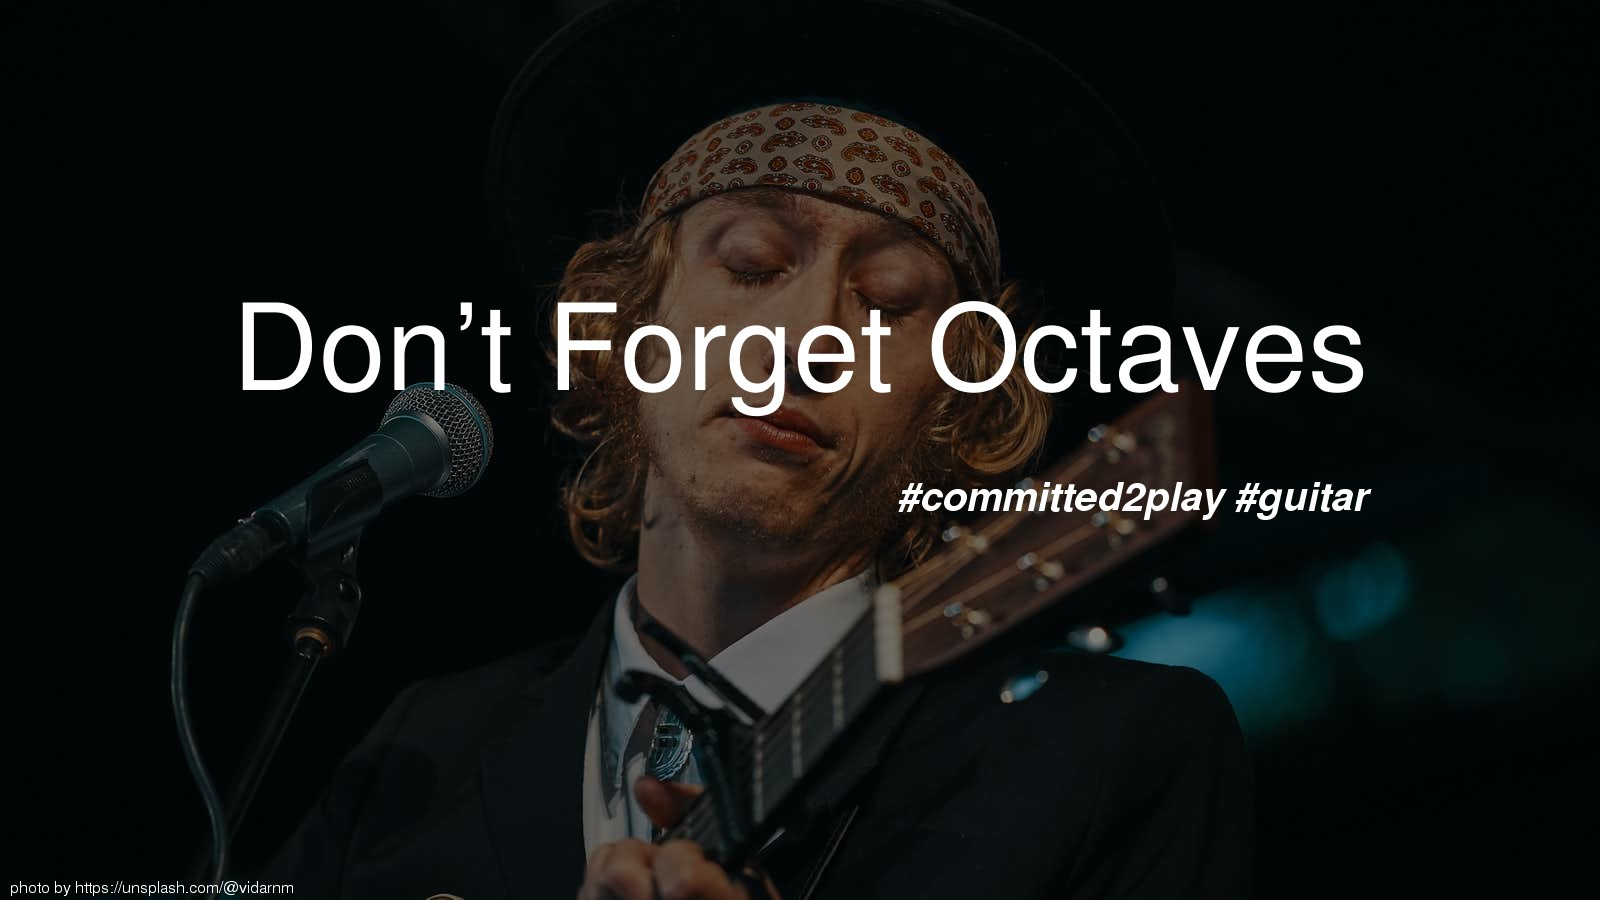 Don't Forget Octaves